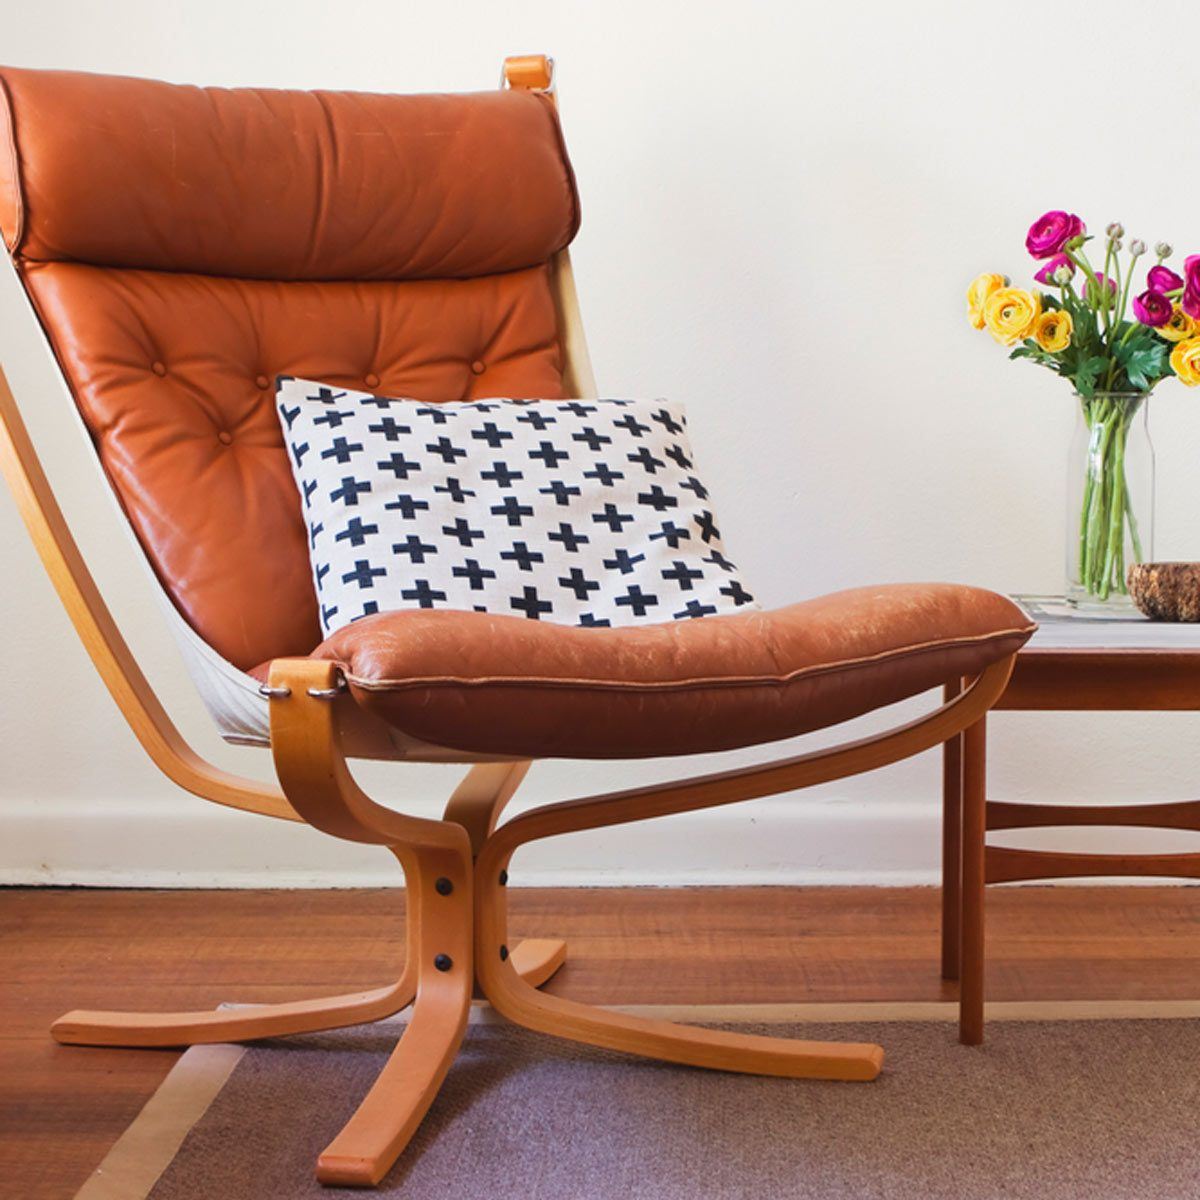 How To Care For Your Indoor Teak Furniture Family Handyman